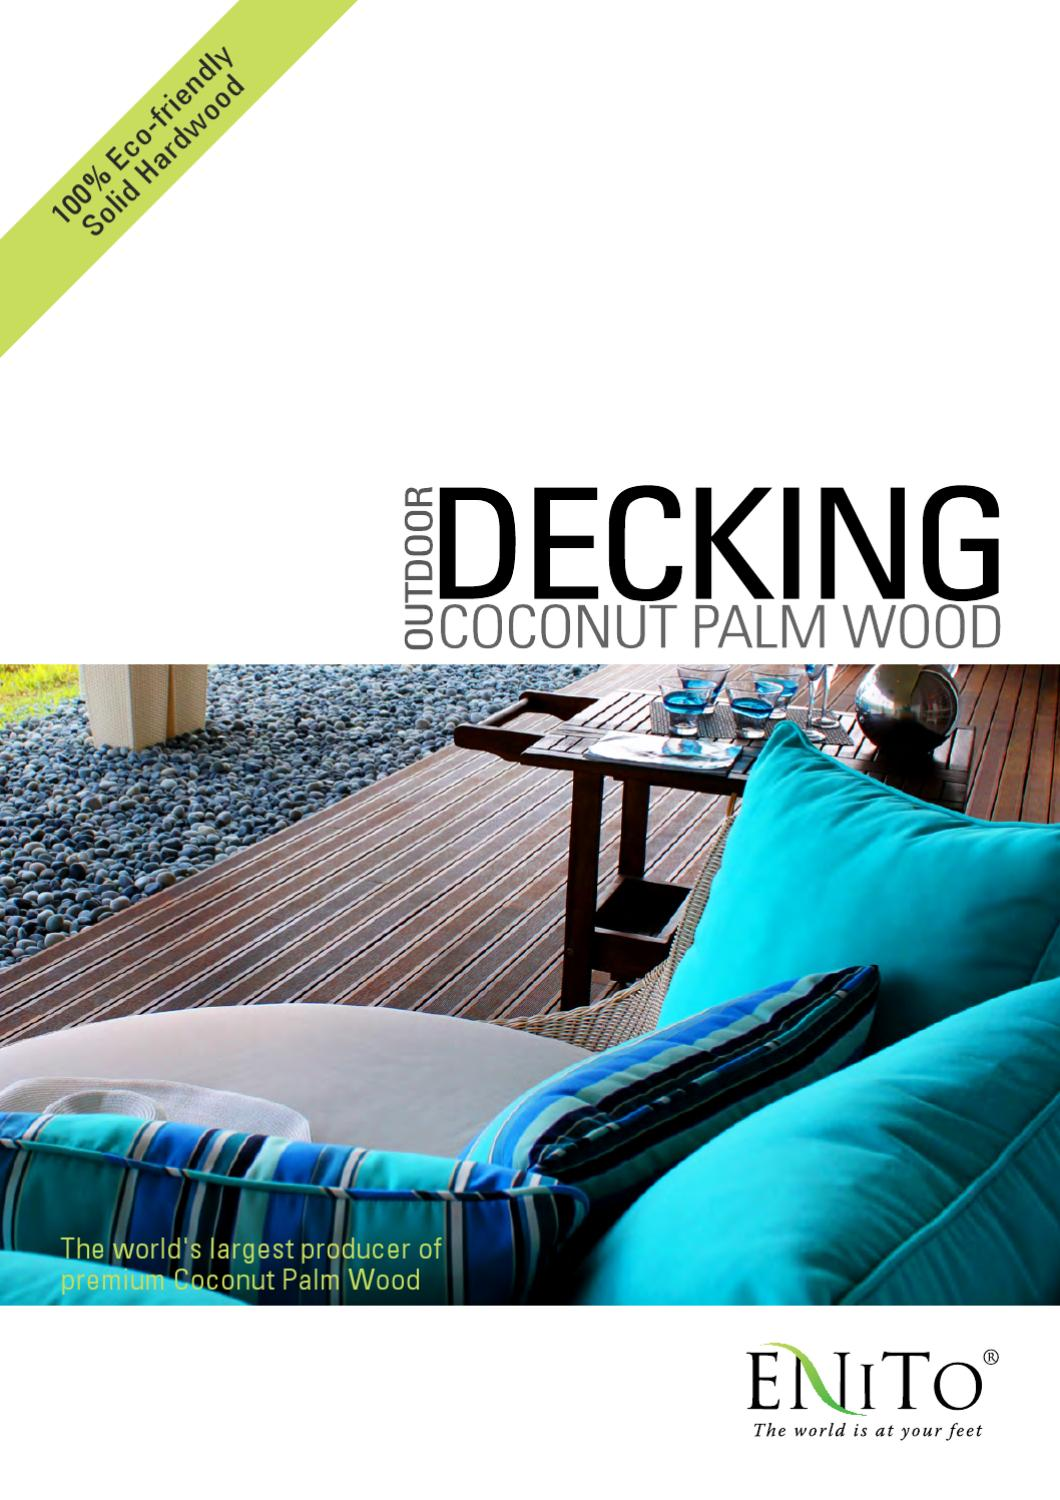 Enito Decking Europe By Enito Flooring Pte Ltd Issuu